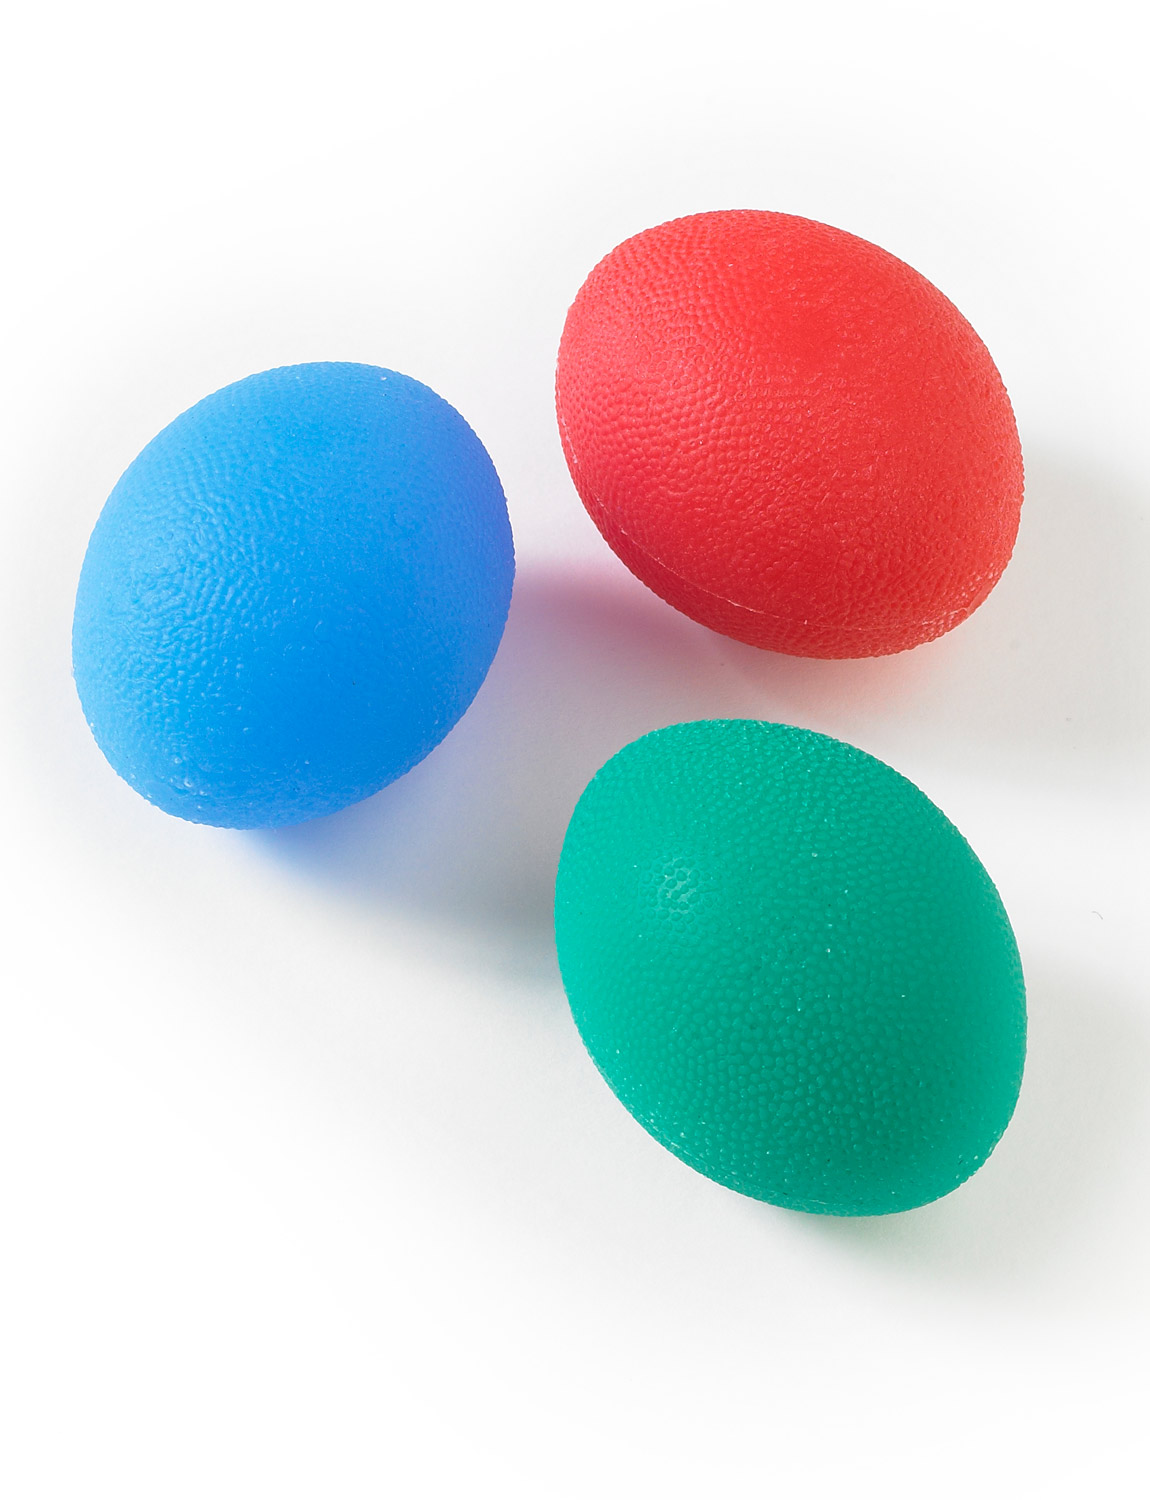 560 - HAND REHABILITATION SILICONE BALL  A one size device that is available in three different resistances to help promote progressive strengthening, increased function, grip and mobility in the hand, wrist and forearm.